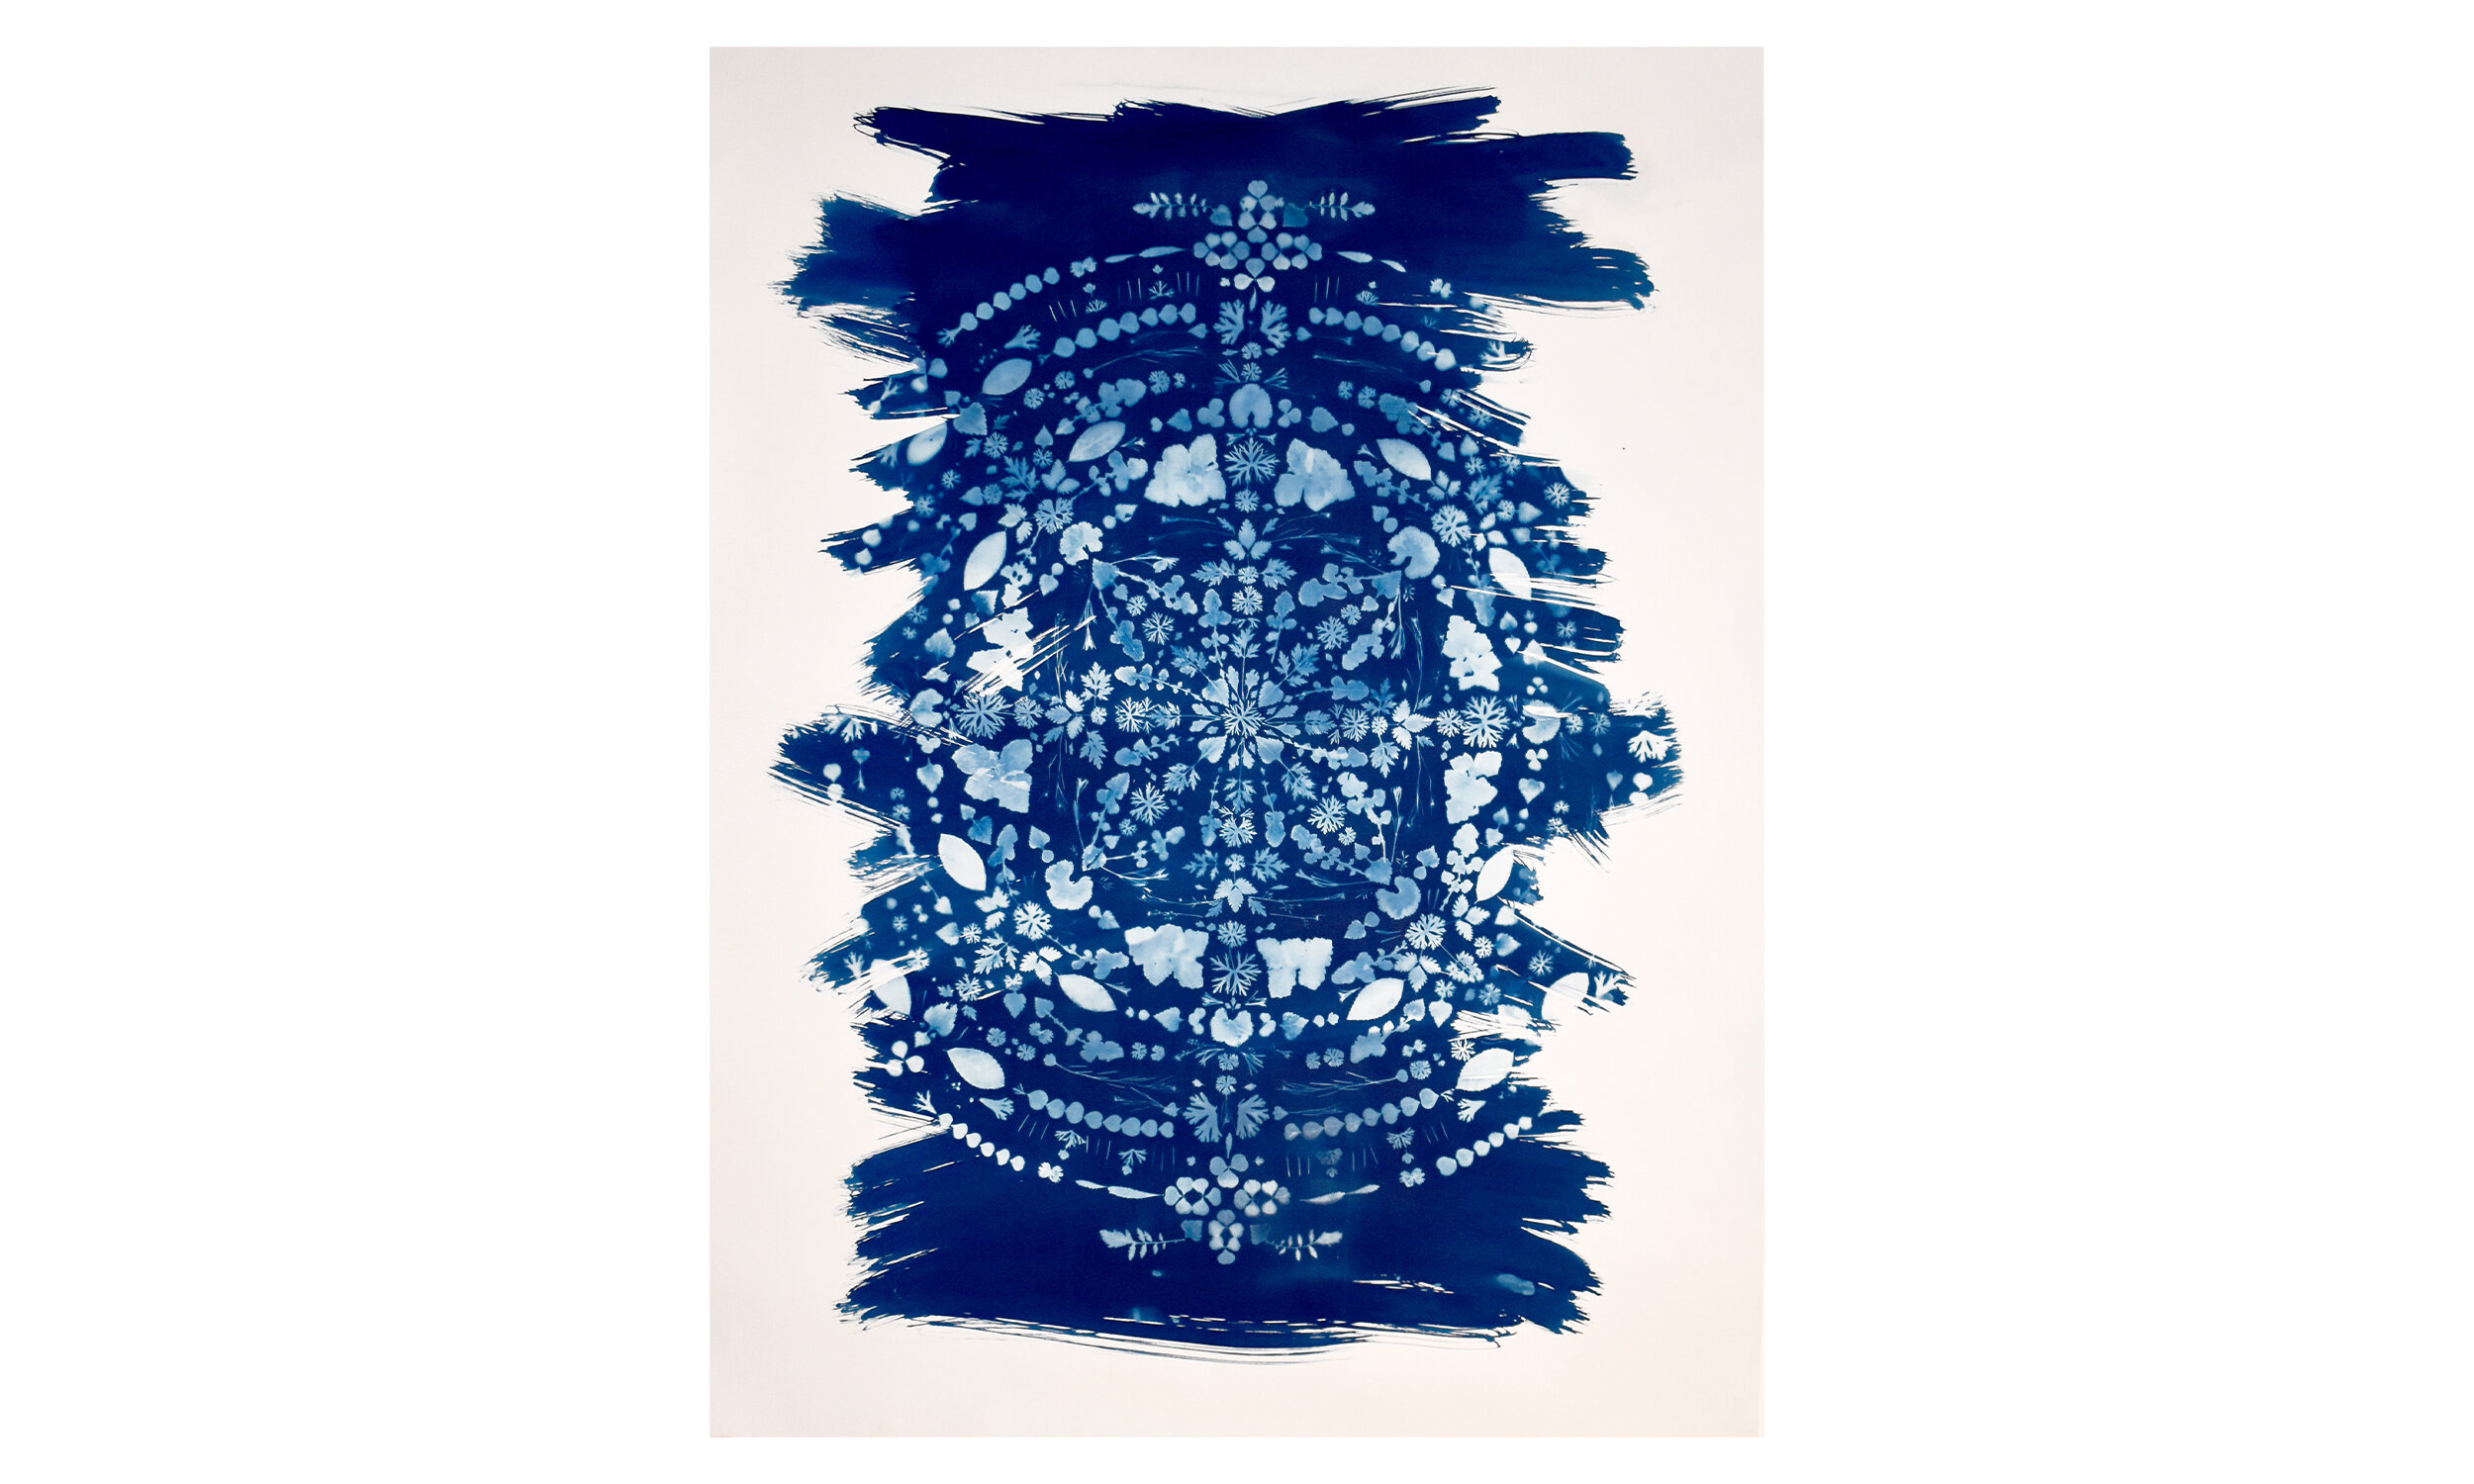 Earthly Mandala II,  cyanotype on paper 42 x 55 inches, unframed $ 3,500    Contact us for purchase